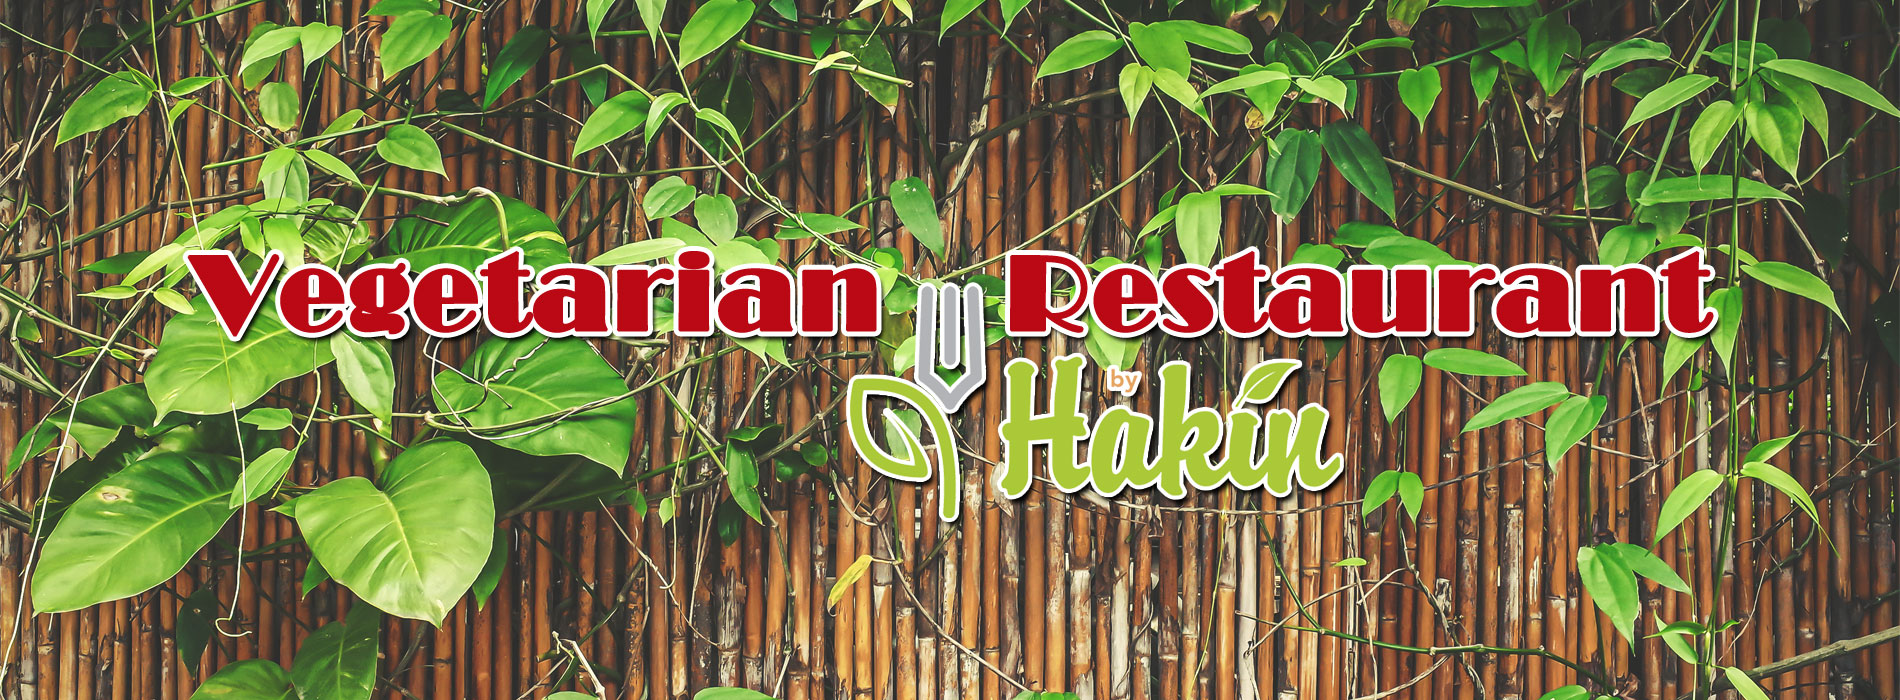 Vegetarian Restaurant by Hakin